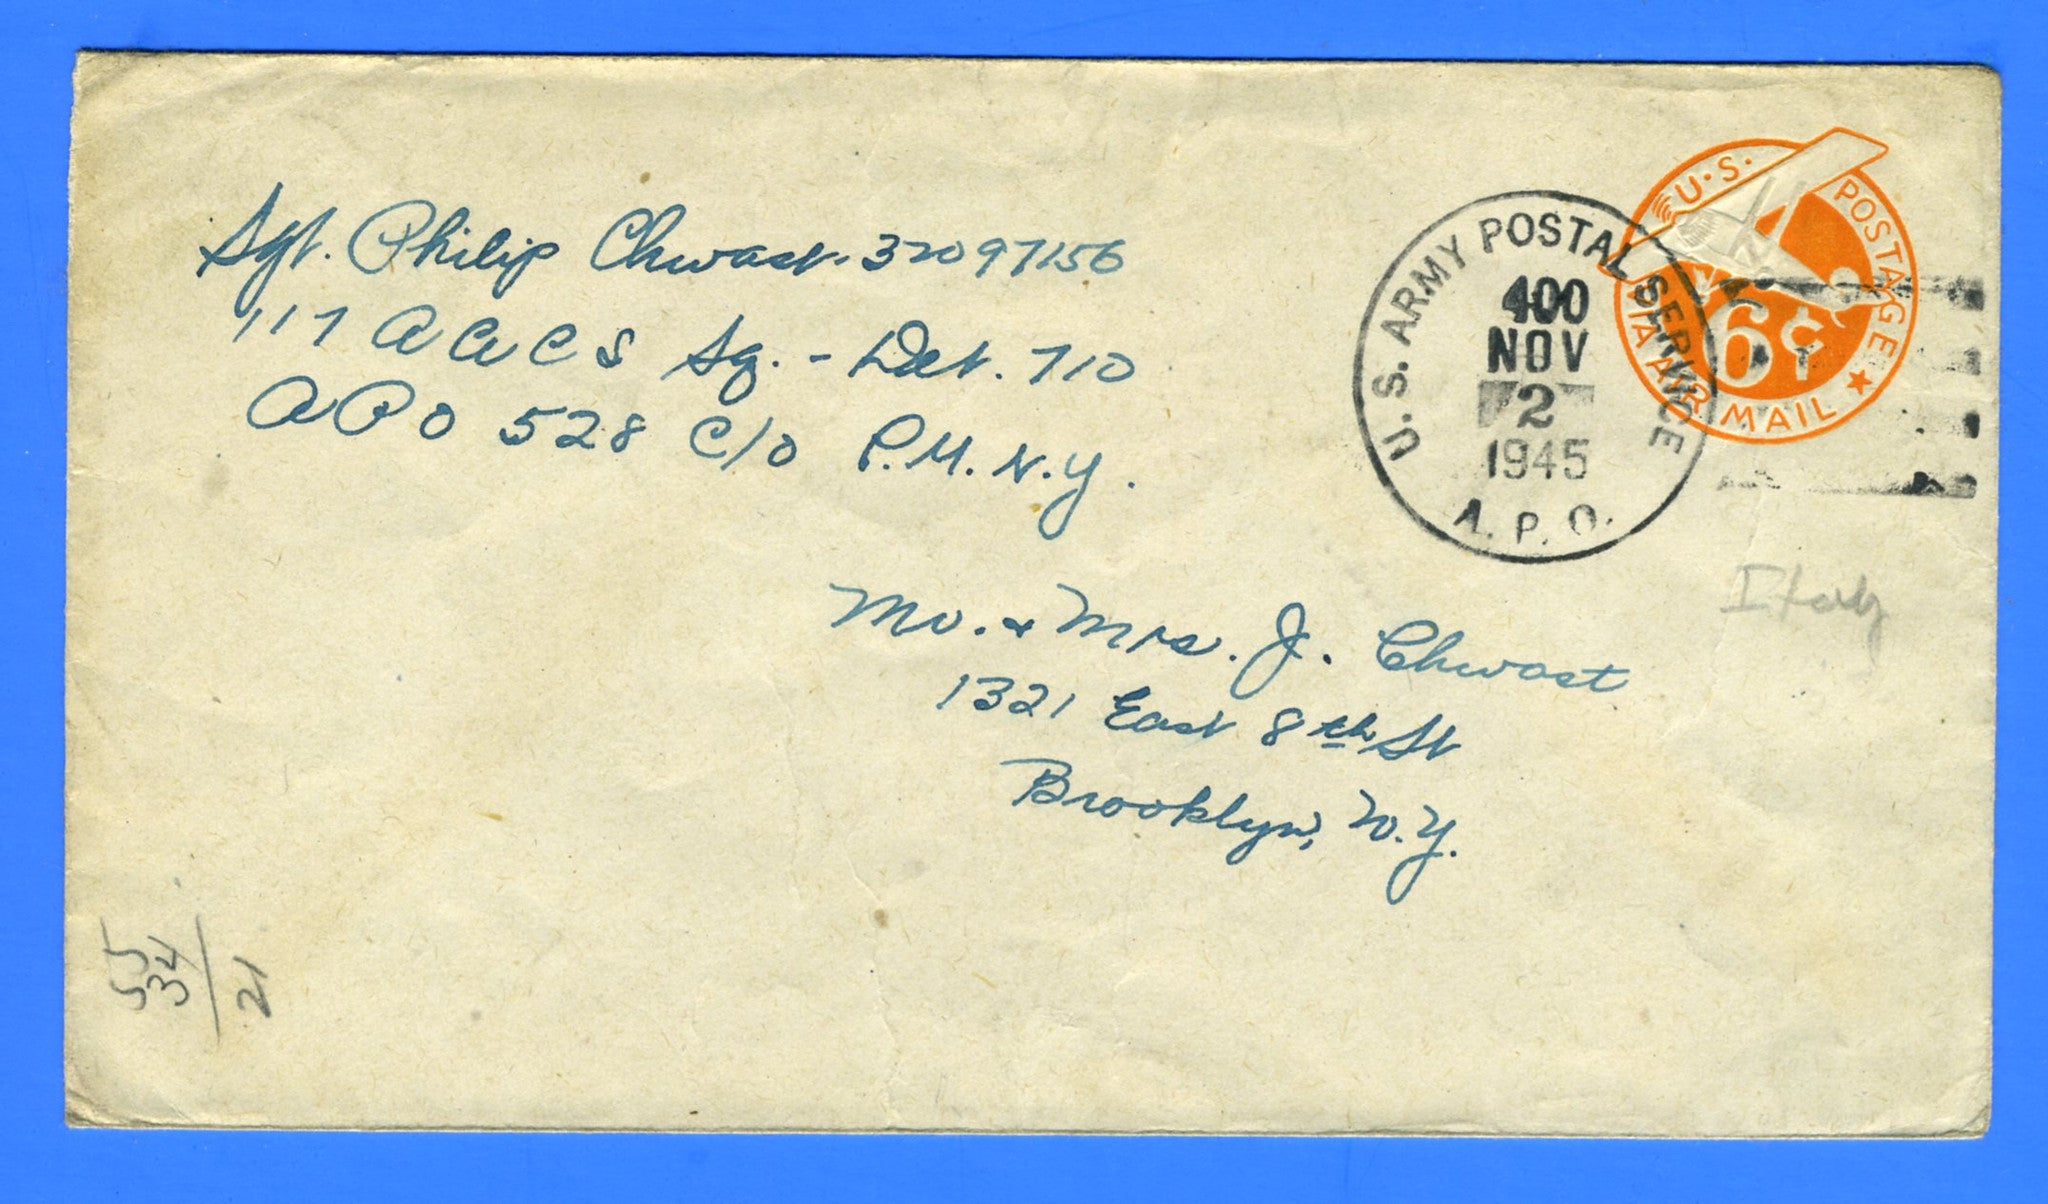 Soldier's Mail APO 528 (Postmarked APO 400) Naples, Italy November 2, 1945